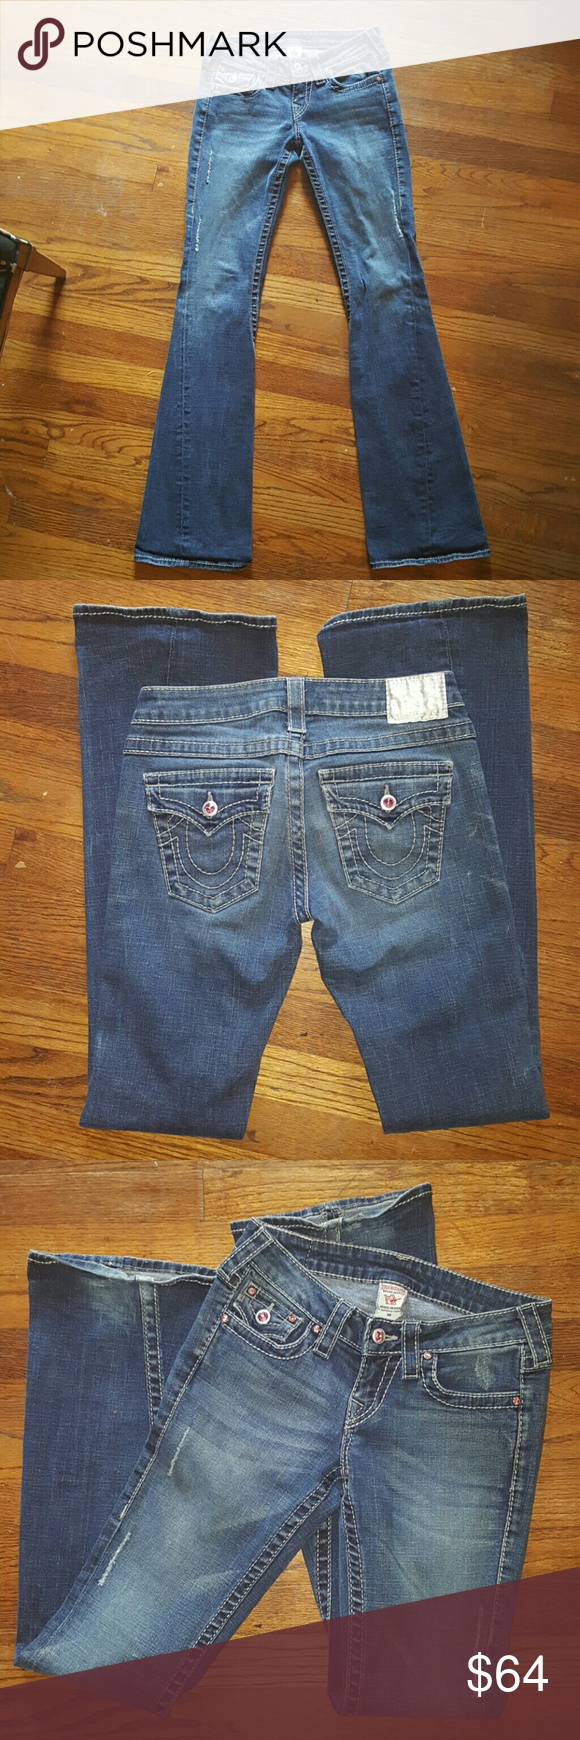 True Religion Womens Sz 26/33 inseam Condition- Like New  Absolutely no signs of wear  Smoke free home.  Limited Edition worth pink stones May trade for $70 value True Religion Pants Boot Cut & Flare